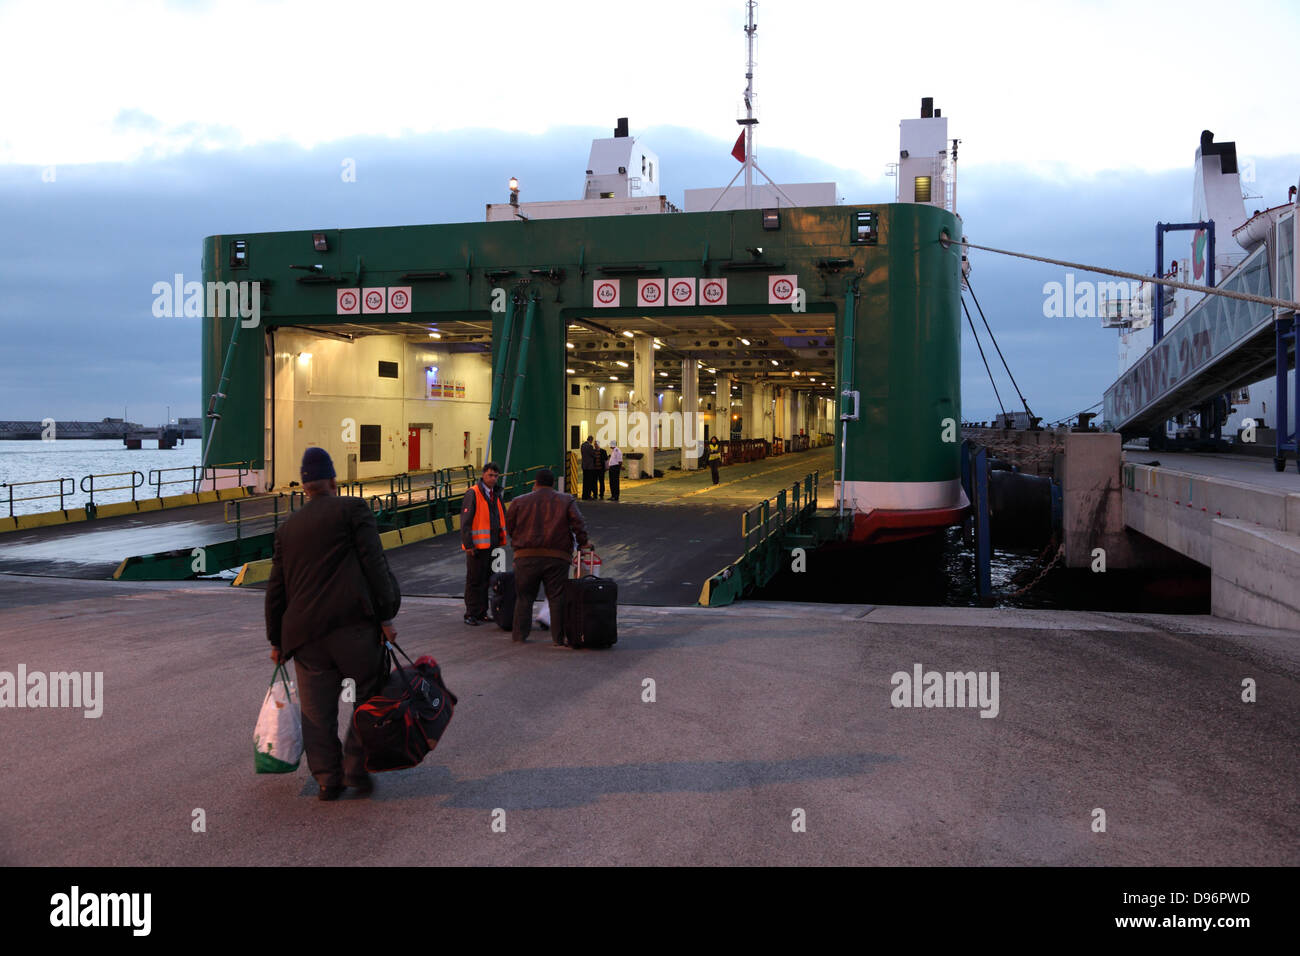 Ferry boarding in Tangier Med, Morocco - Stock Image